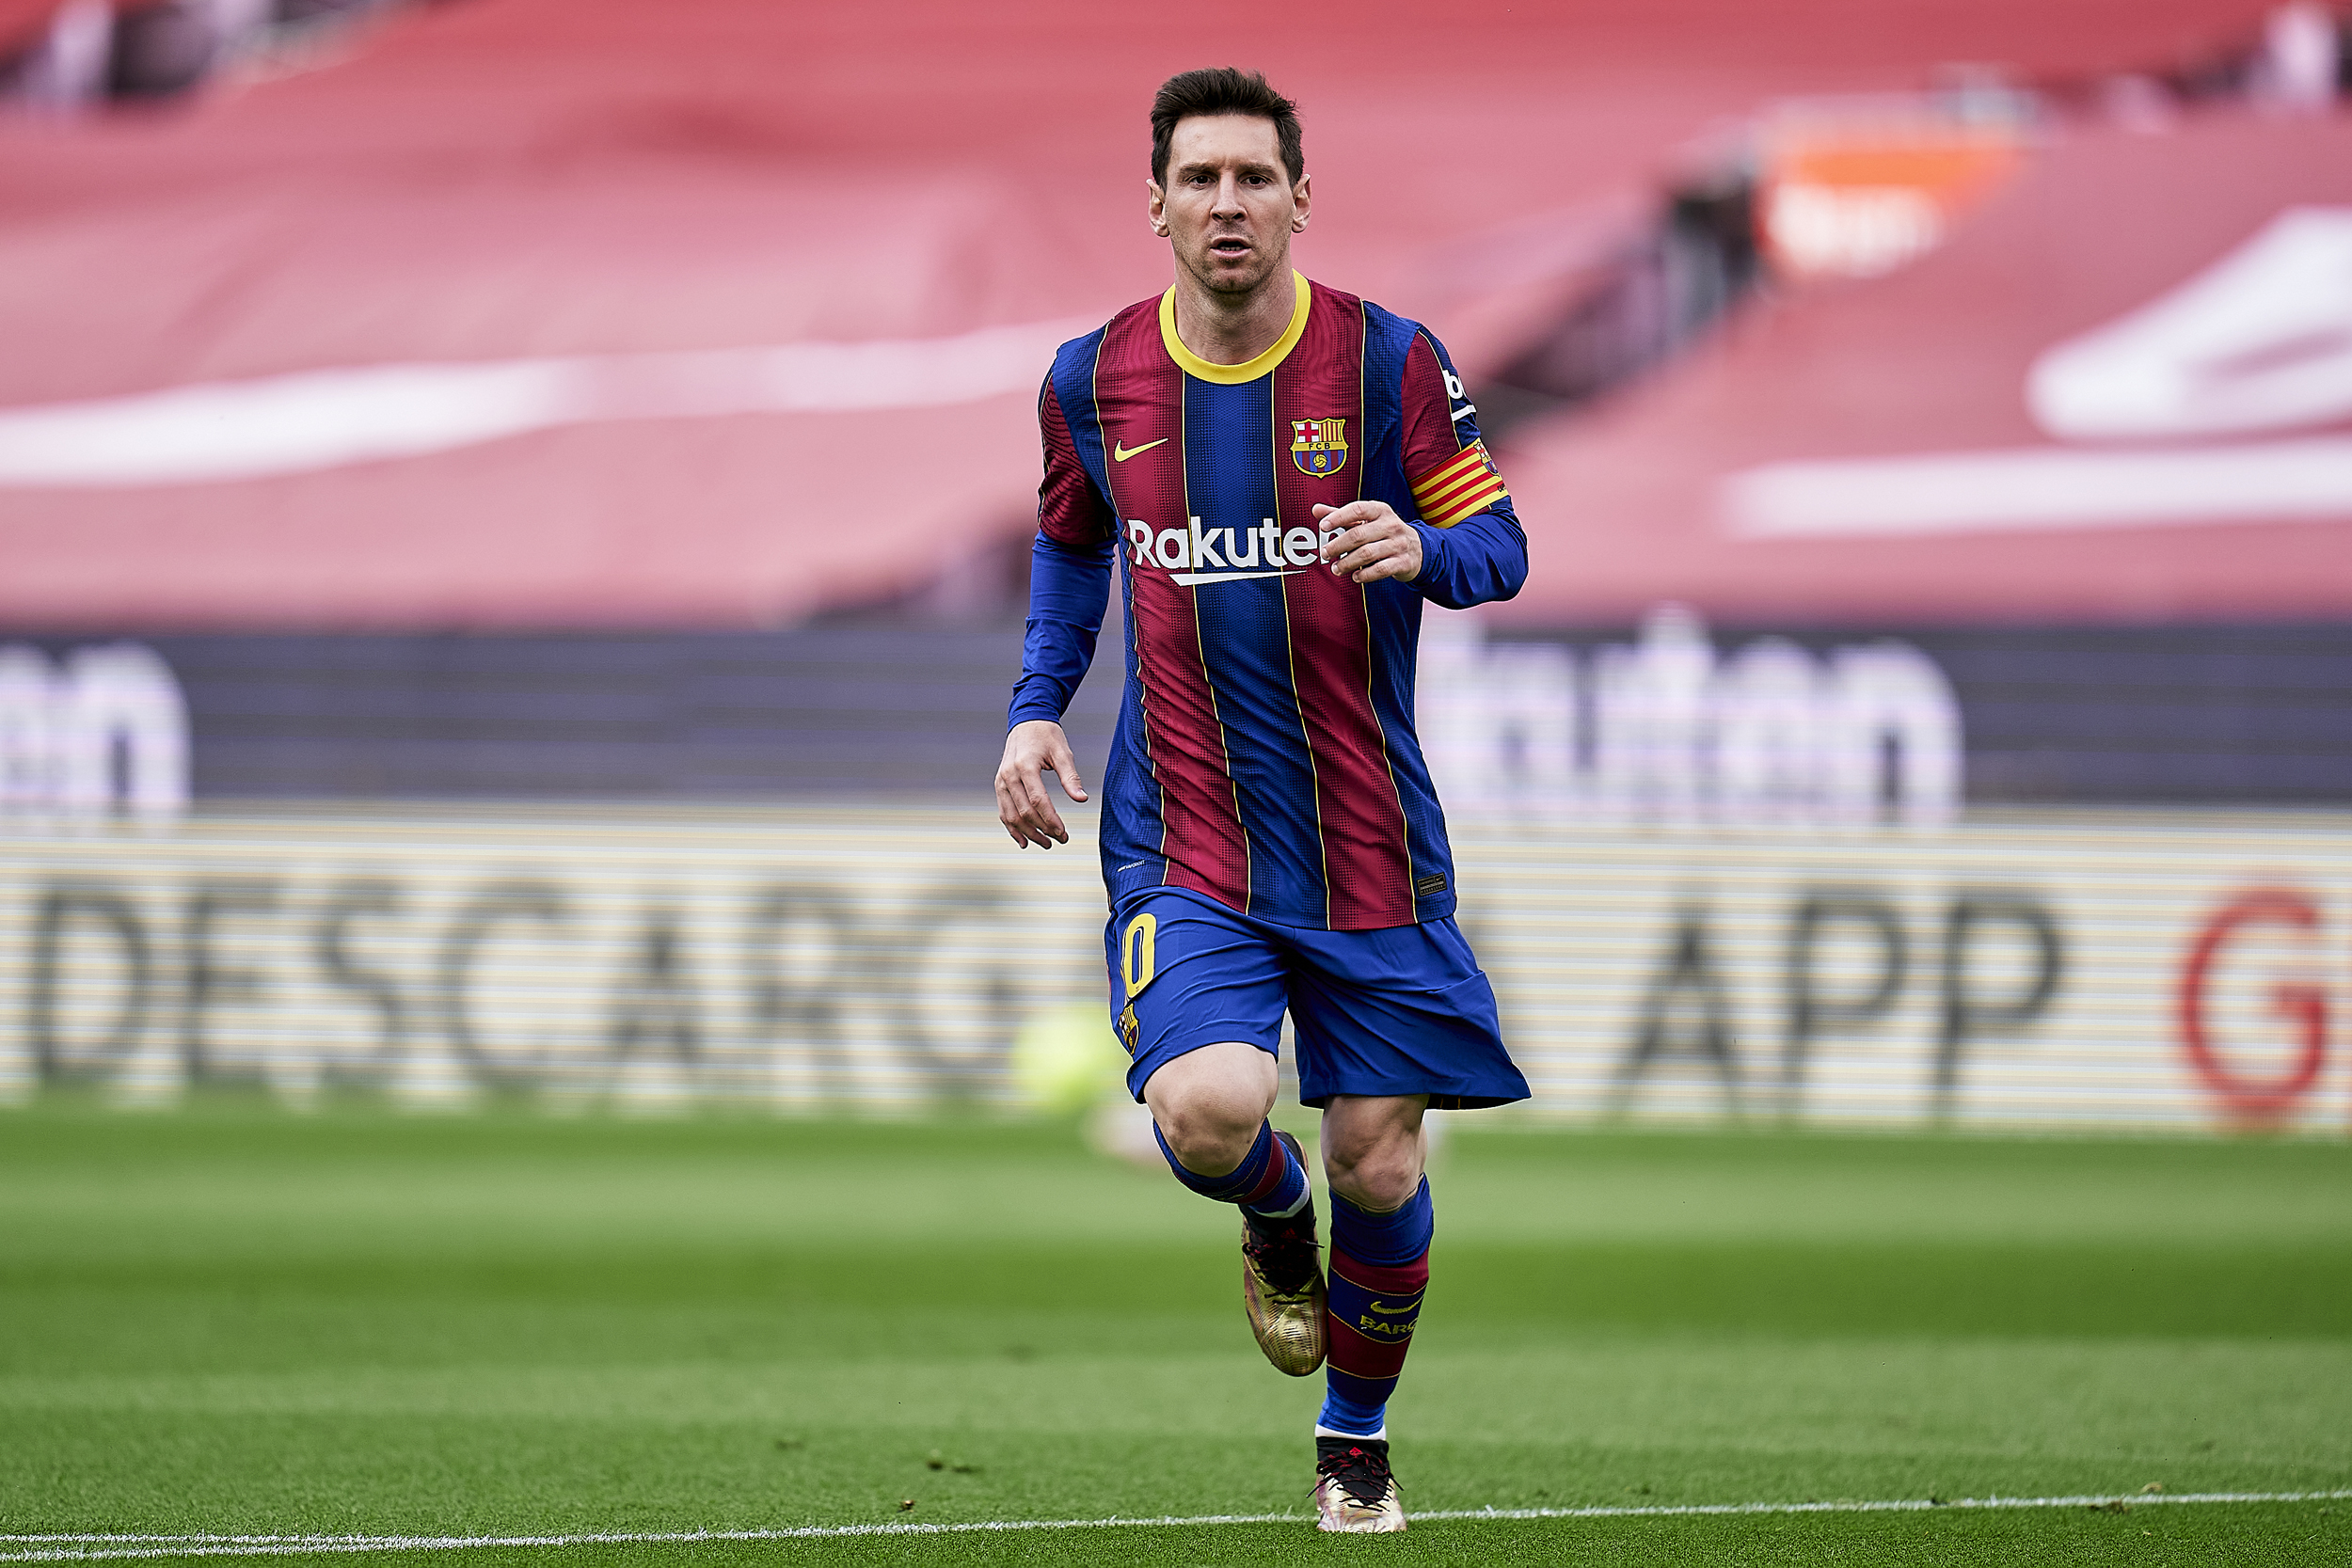 Soccer superstar Lionel Messi leaving FC Barcelona, the only club he's ever known